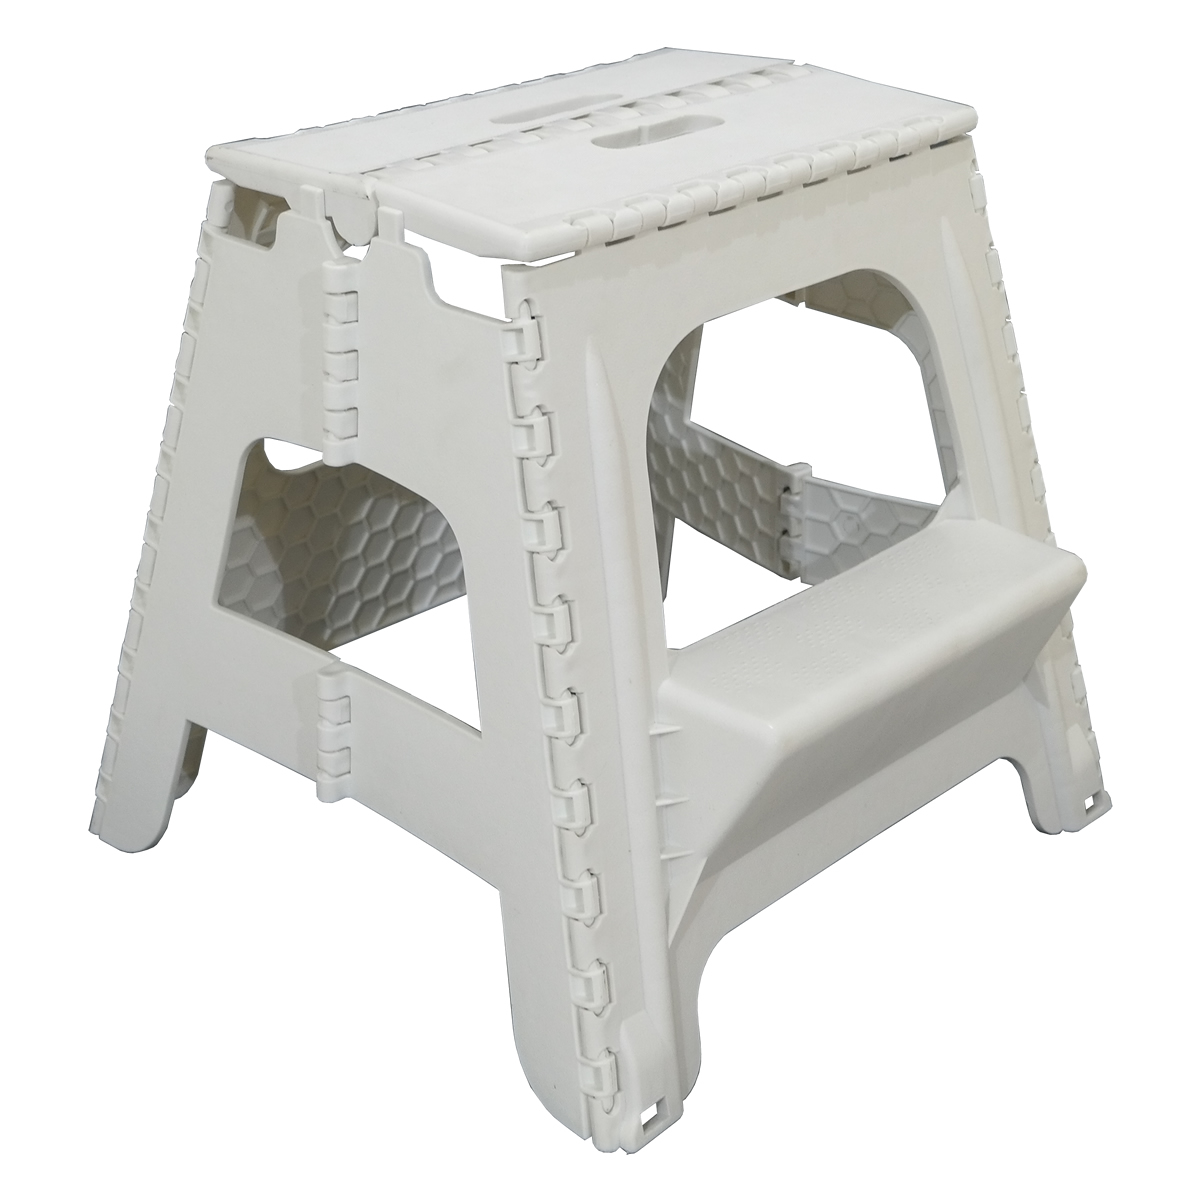 Prime Details About Plastic 2 Step Folding Step Stool Tall Home Kitchen Garage Home Easy Storage Cjindustries Chair Design For Home Cjindustriesco